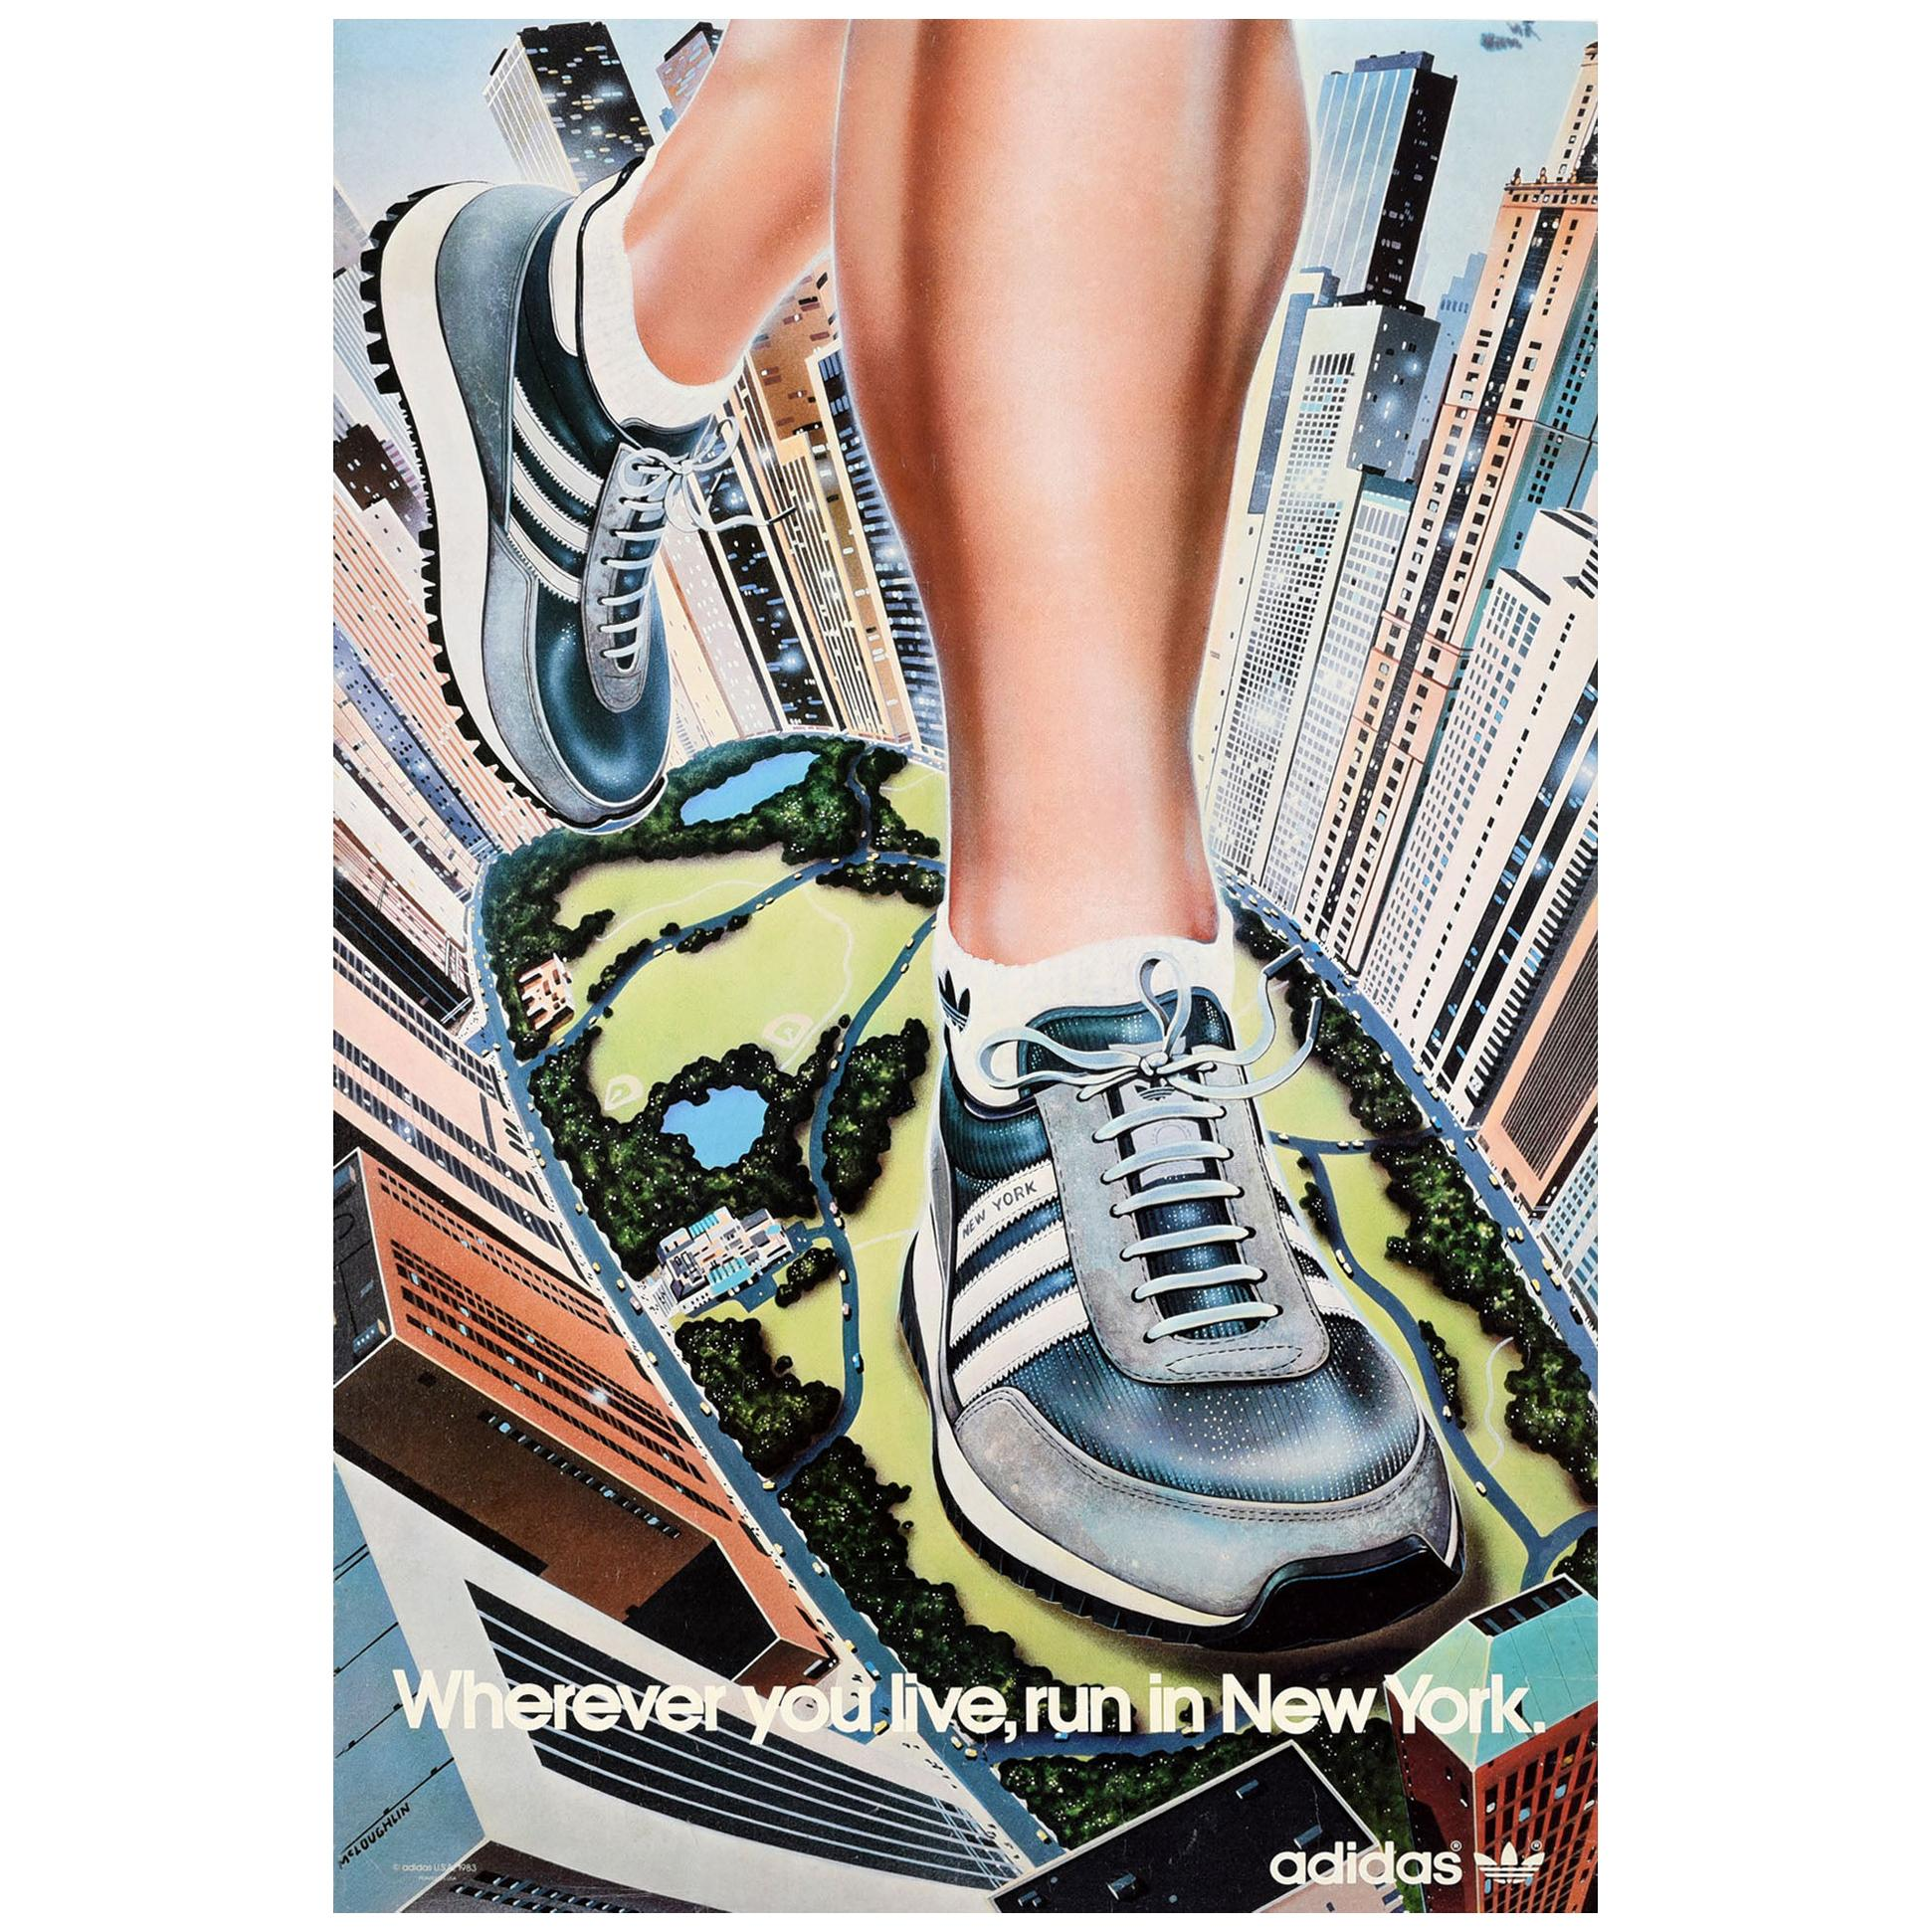 Original Vintage Poster Wherever You Live Run In New York Adidas Originals Shoes For Sale At 1stdibs